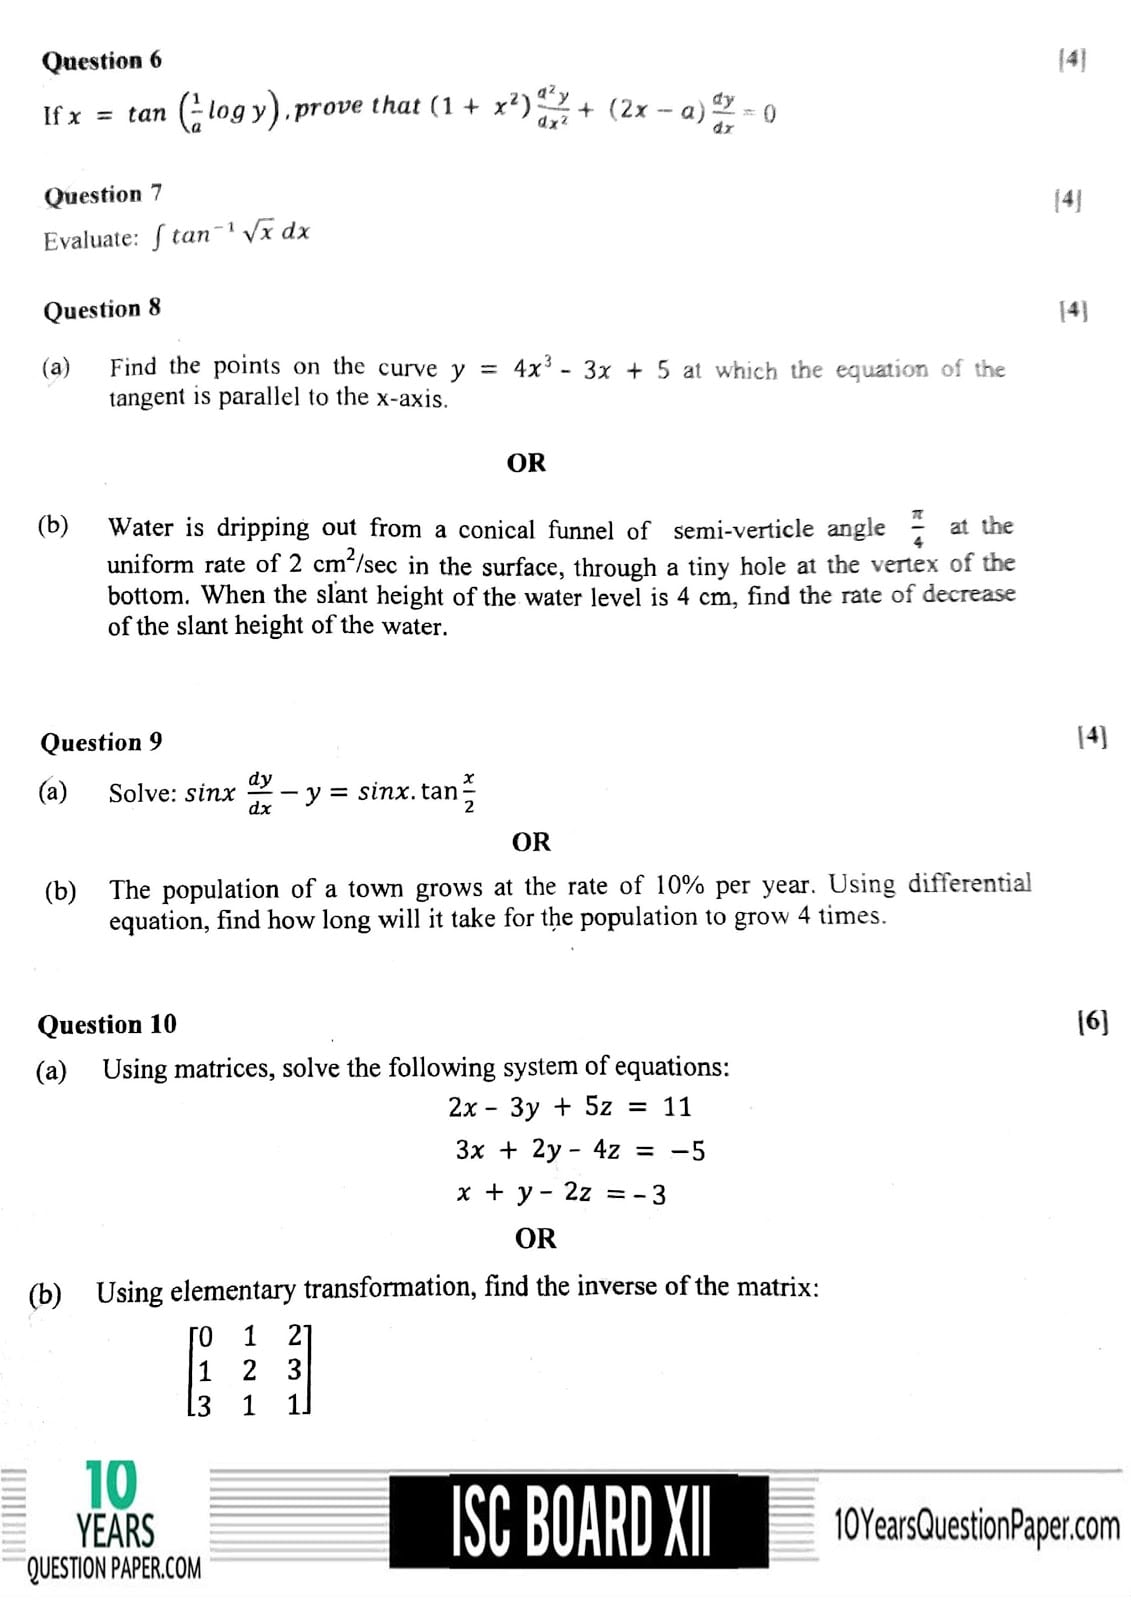 ISC Class 12 Mathematics 2018 Question Paper